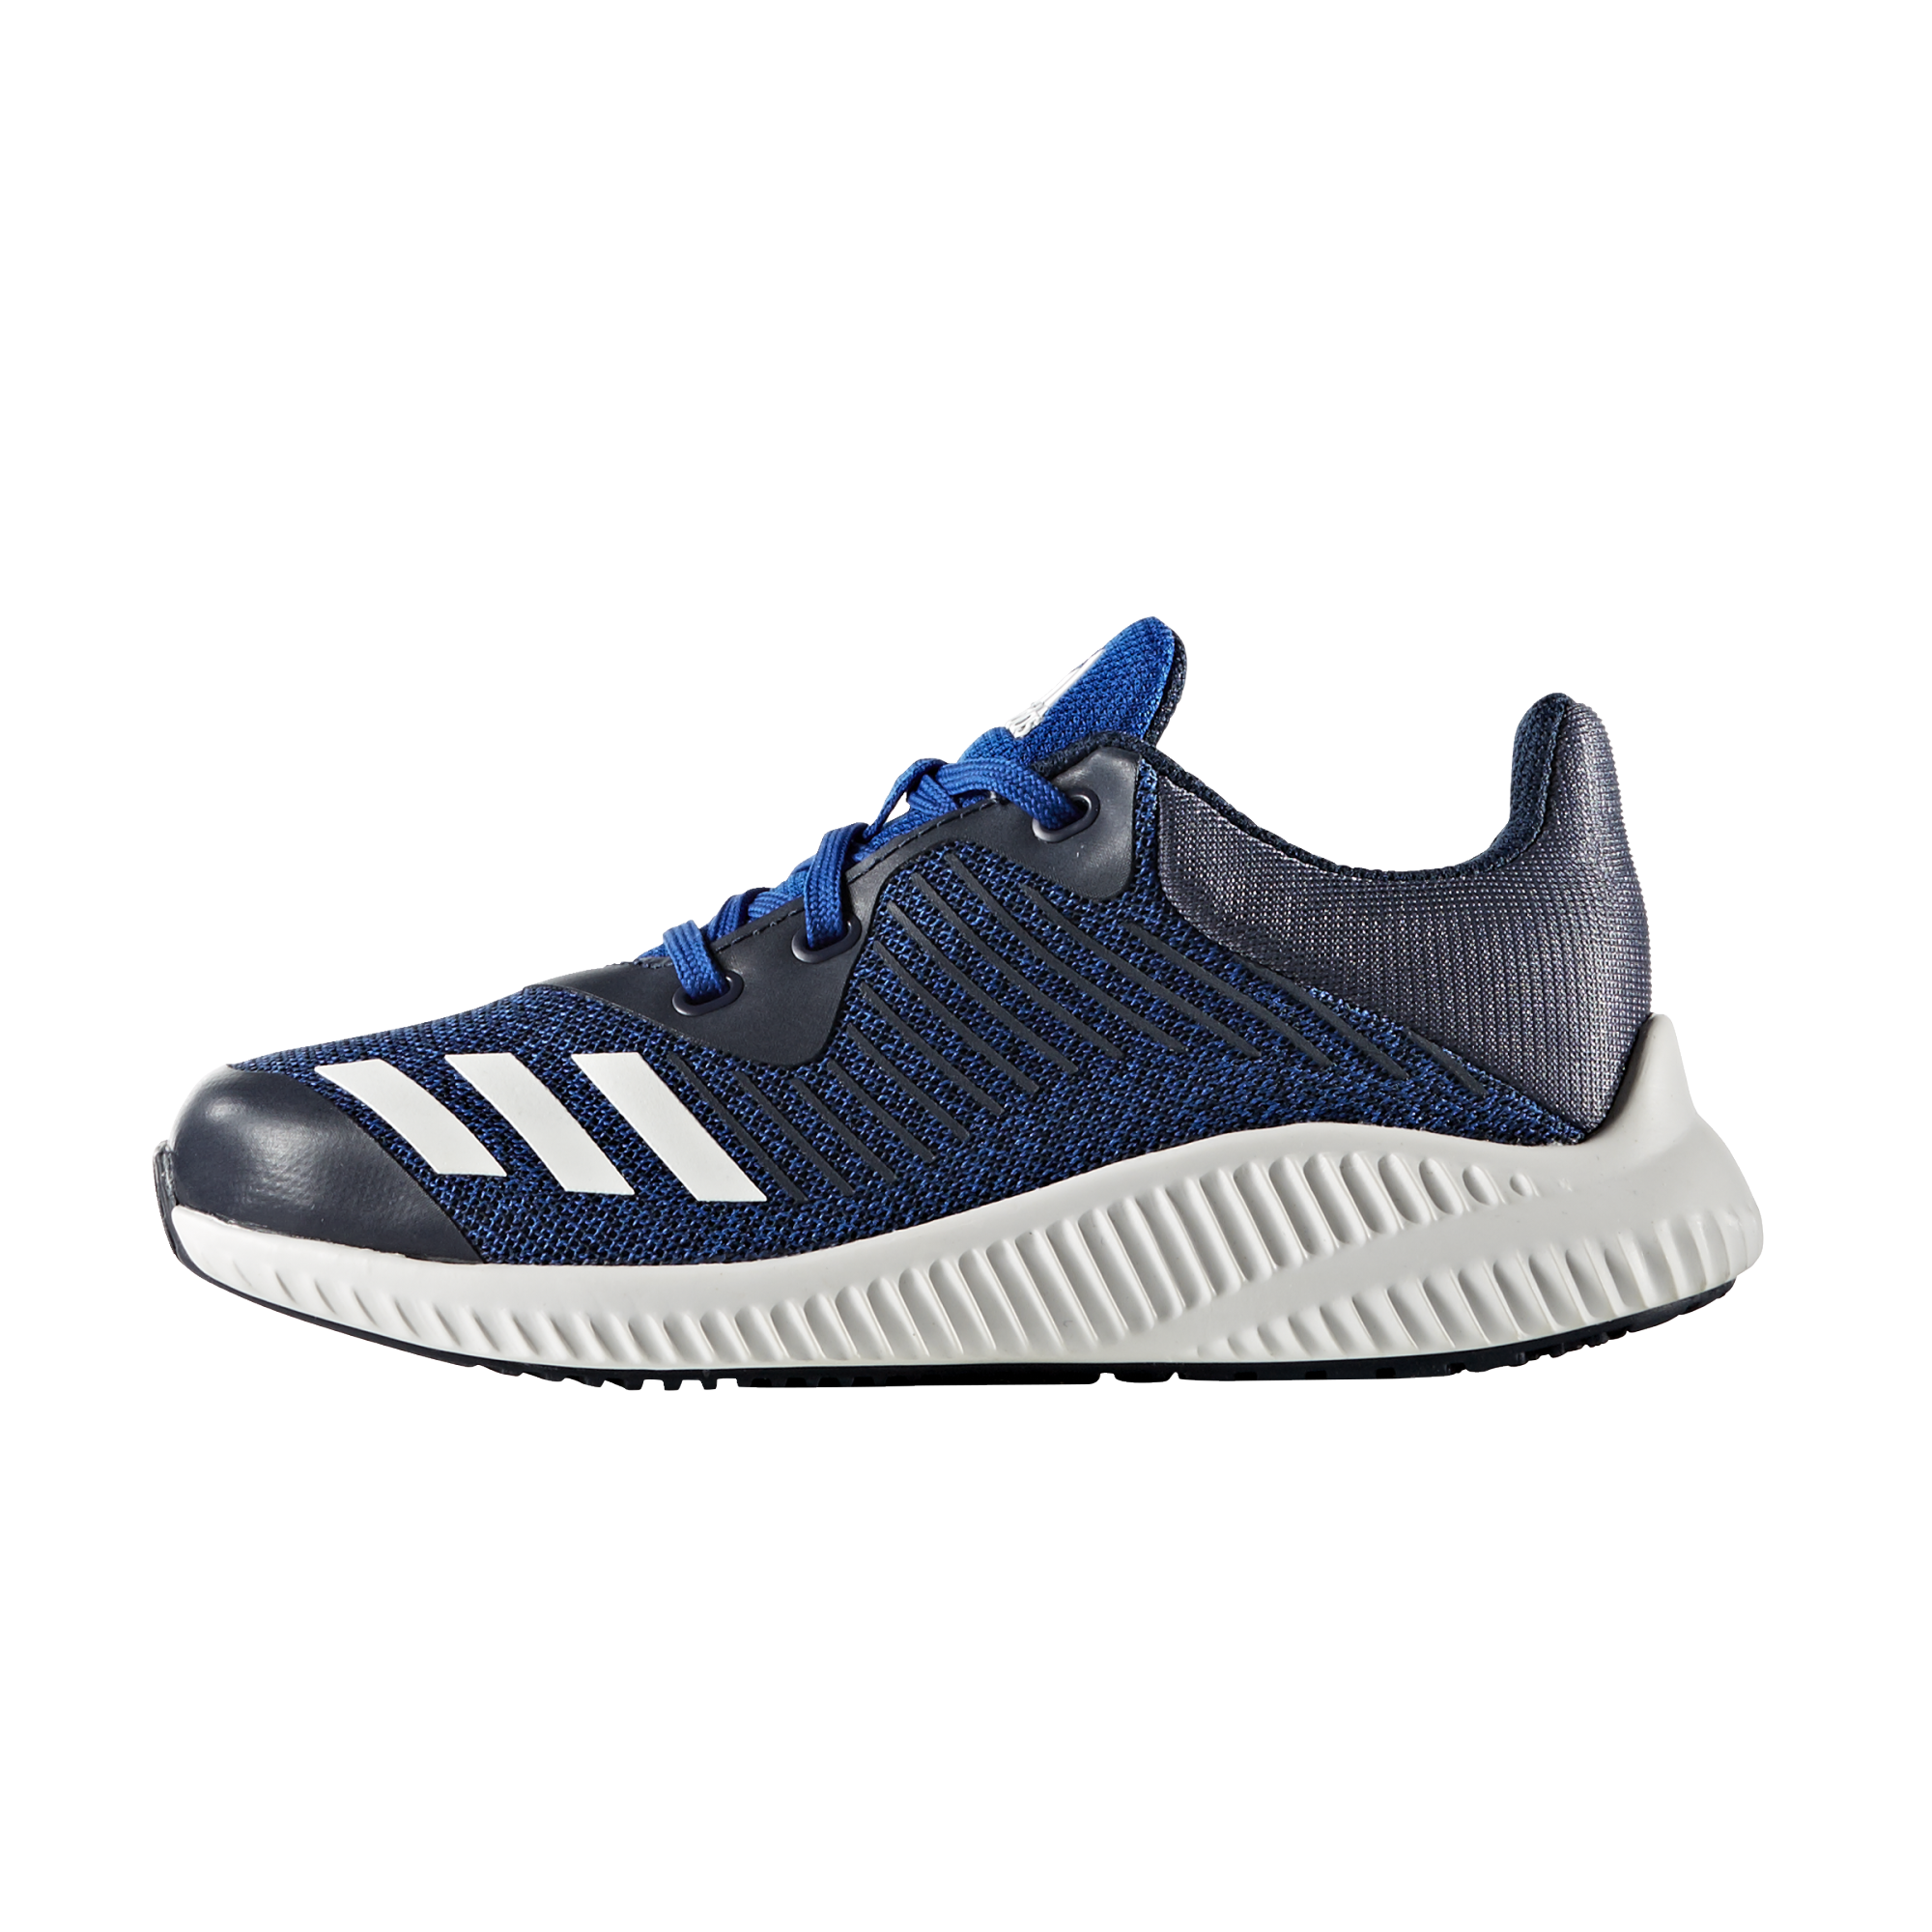 School bags online cyprus - Fast Fun And Flexible These Kids Running Shoes Have A Clean Fluid